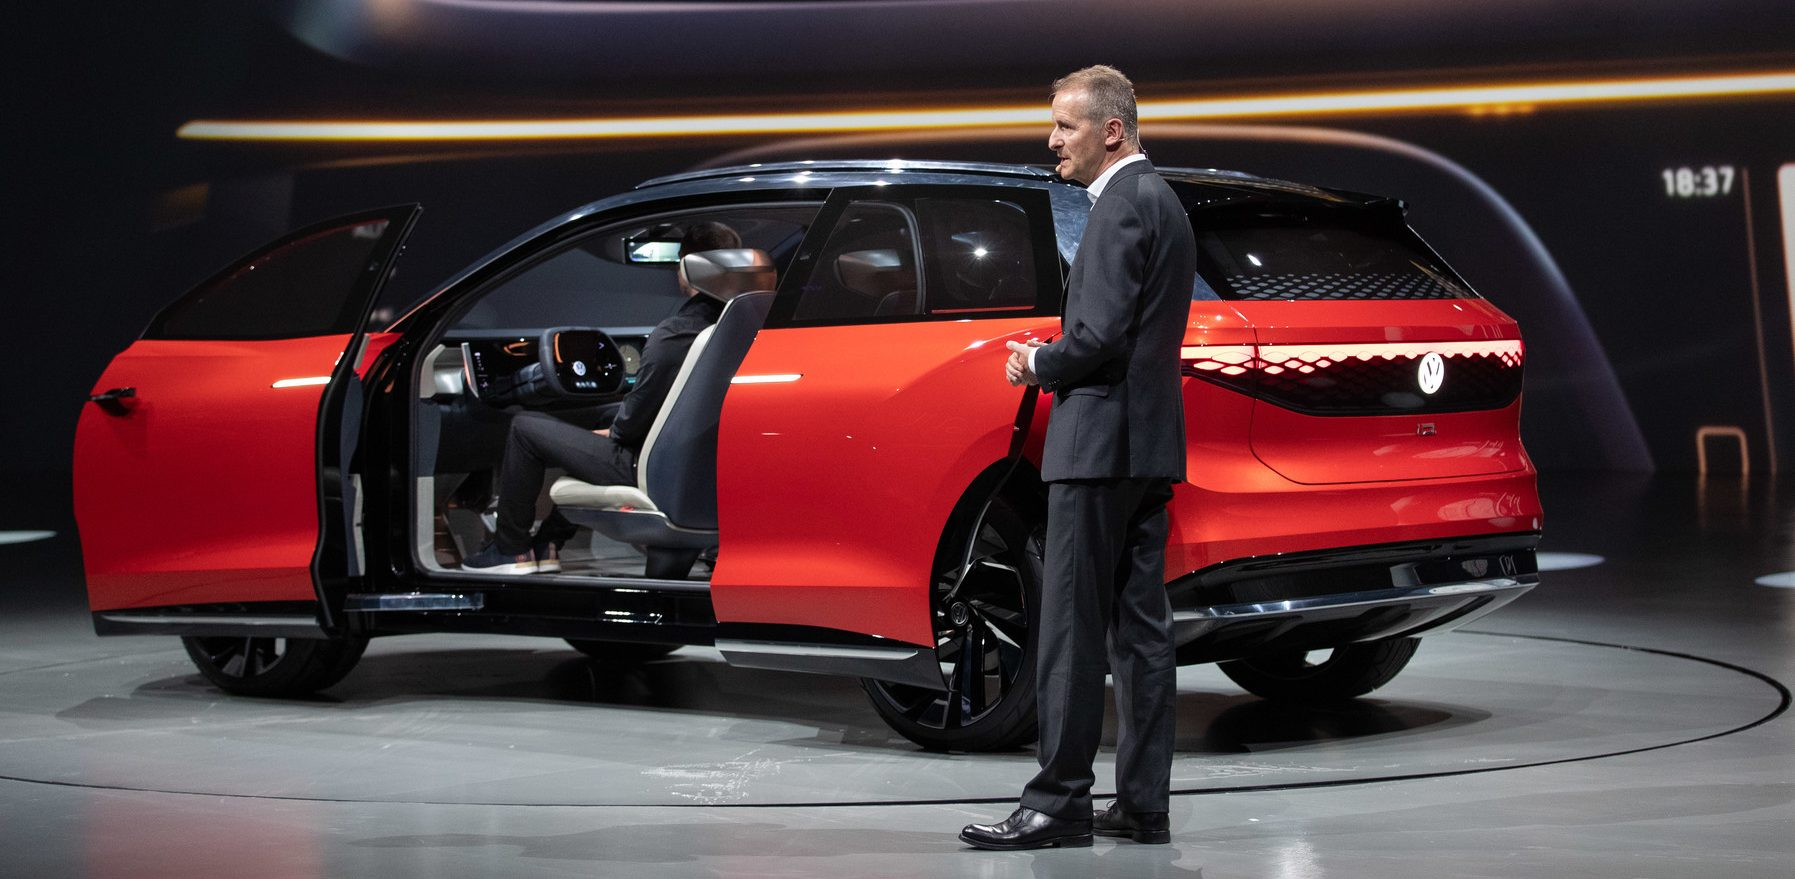 vw unveils new all-electric suv with long range and sleek interior